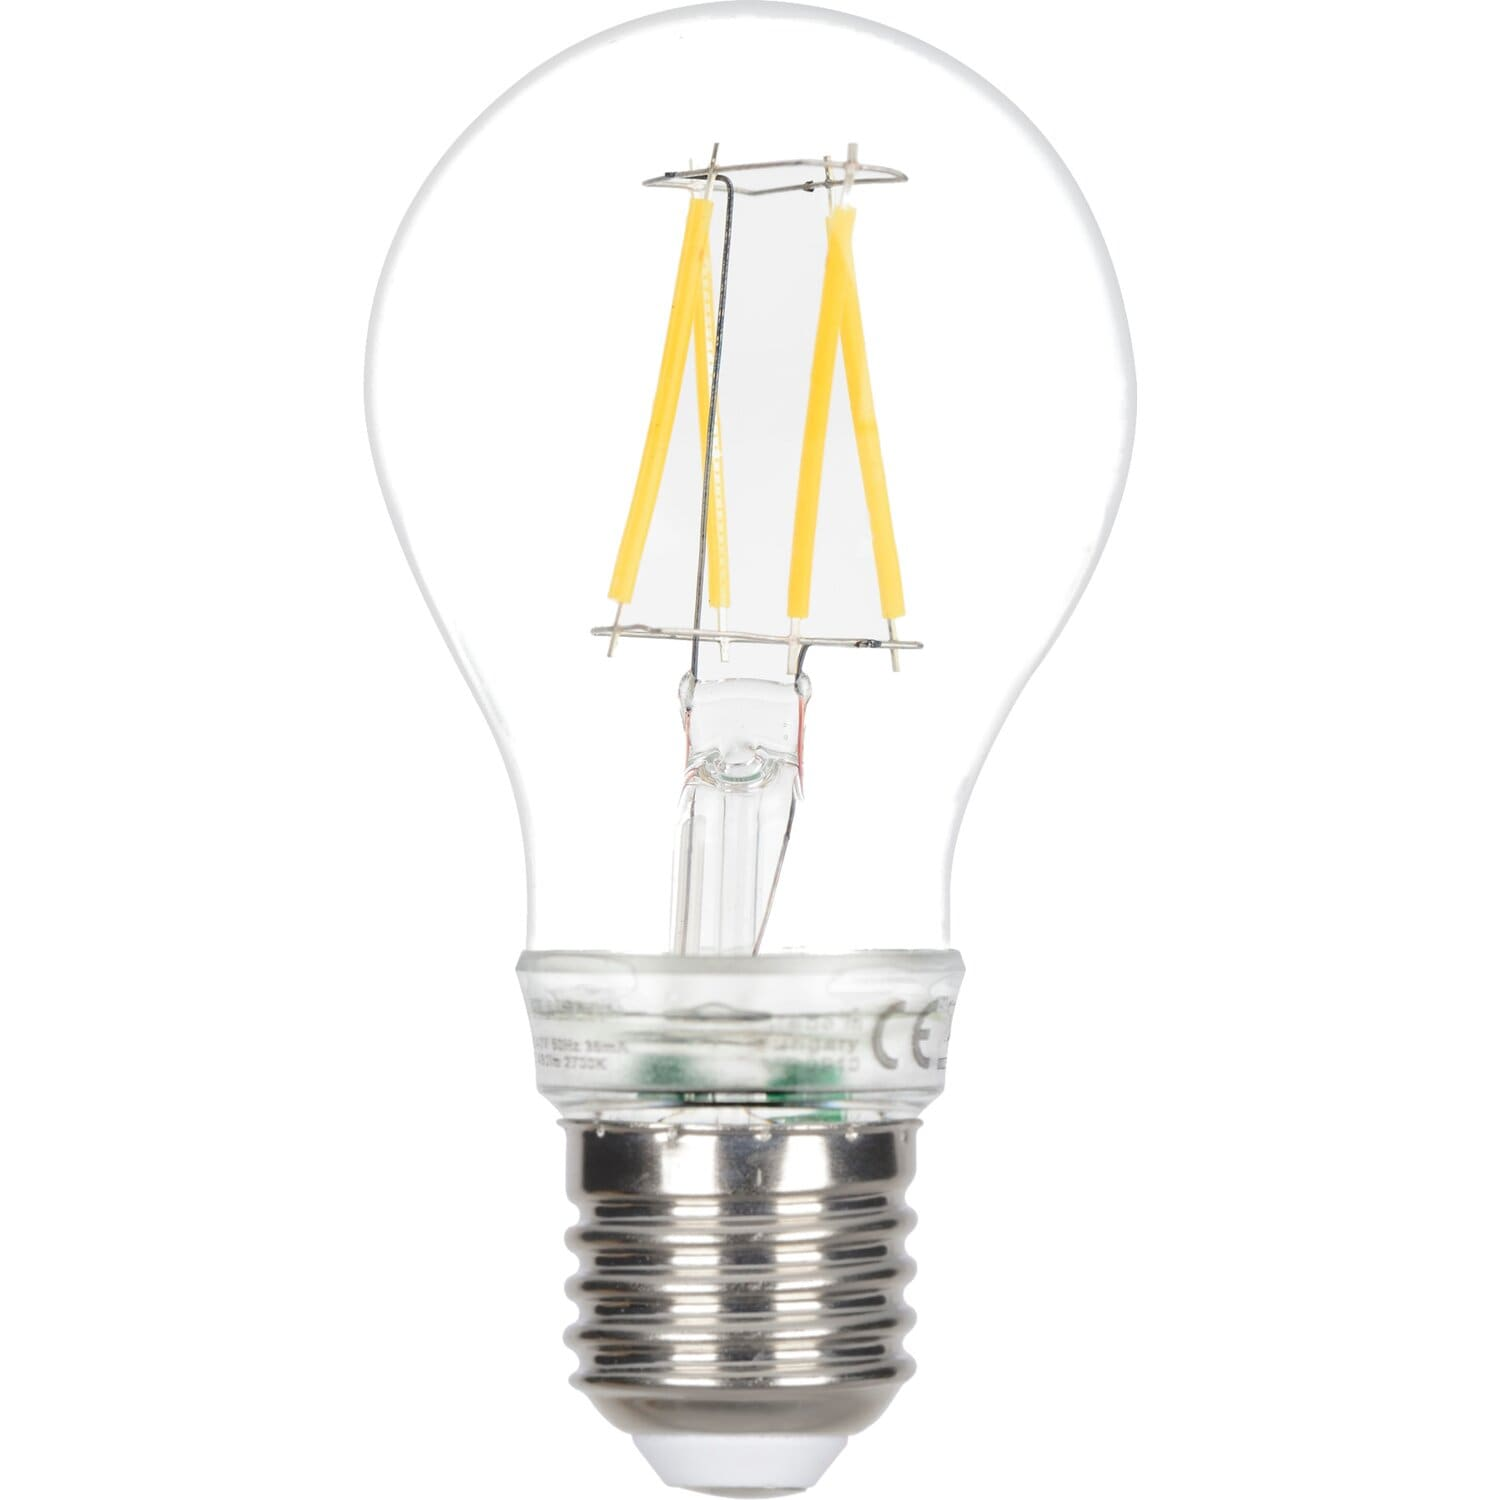 Żarówka GENERAL ELECTRIC LED4/A60 FIL/827/220-240V/E27 H